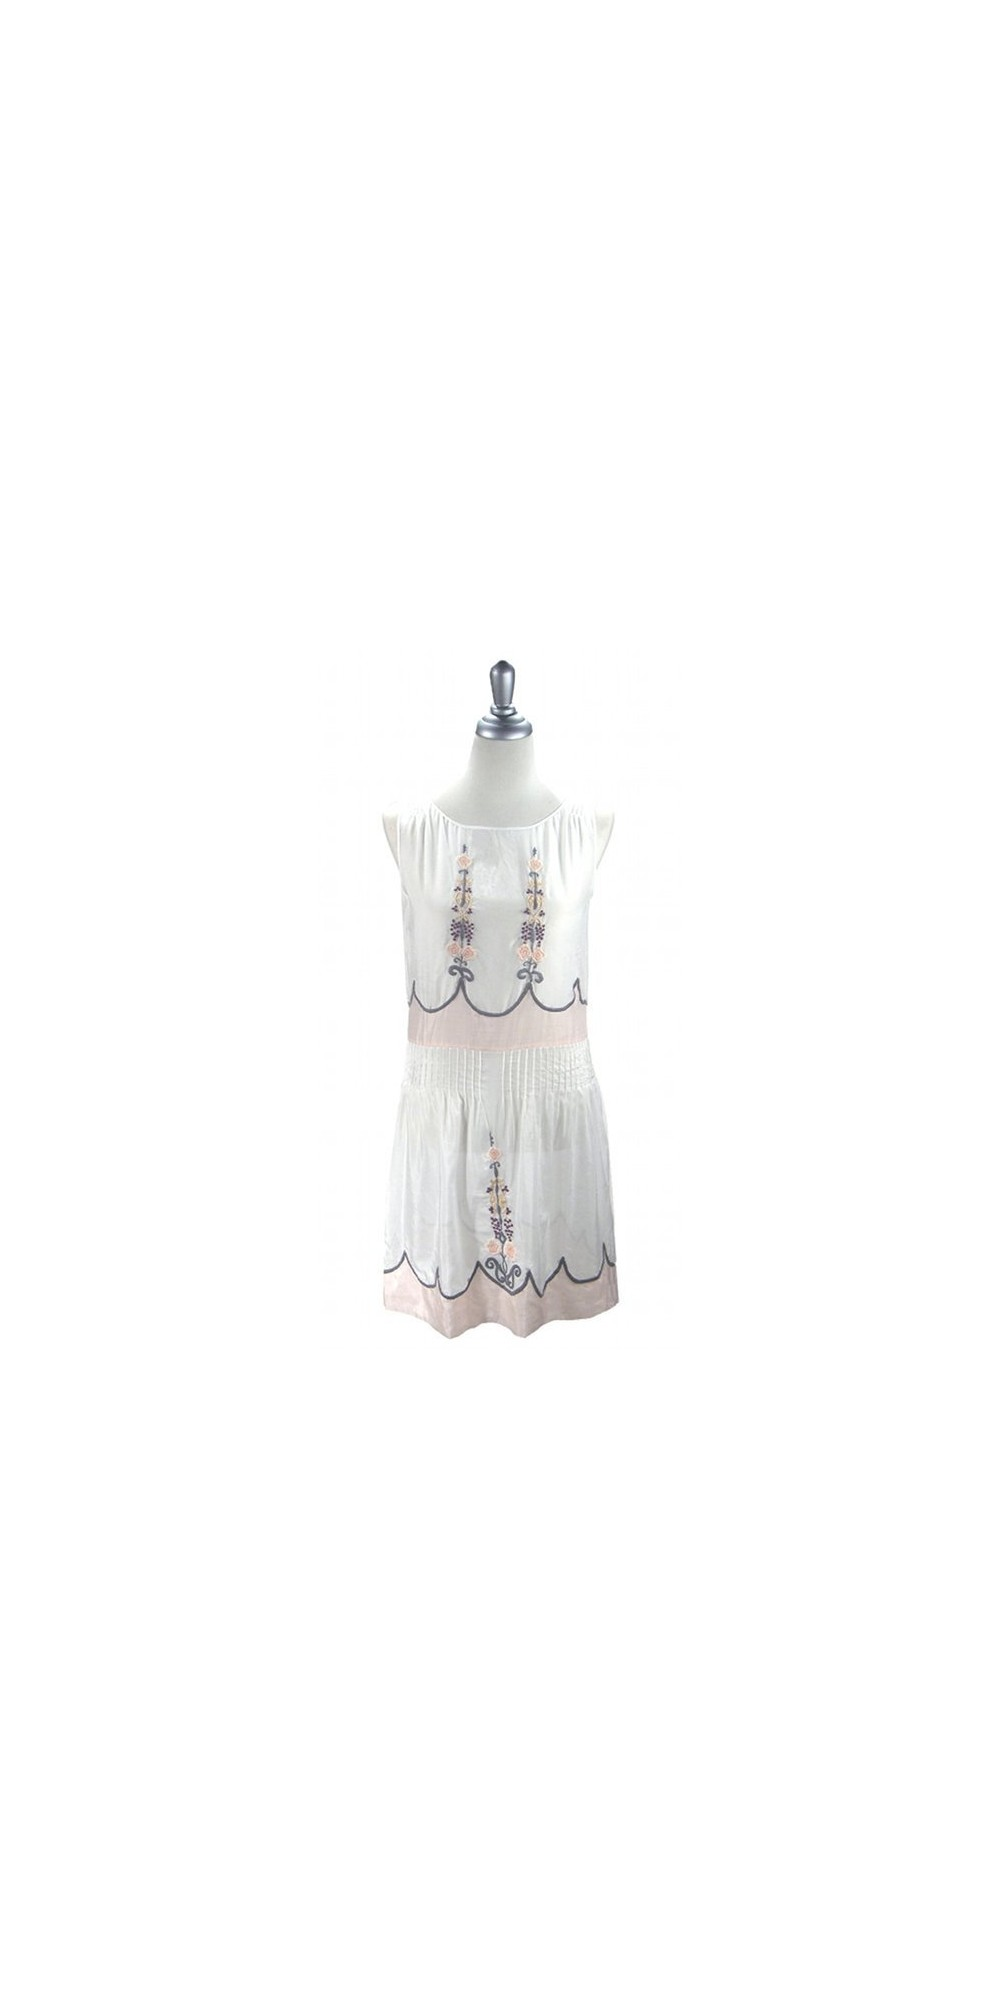 ff0db19241b 1920s Vintage Style Embroidered Dress in White by The Deco Haus